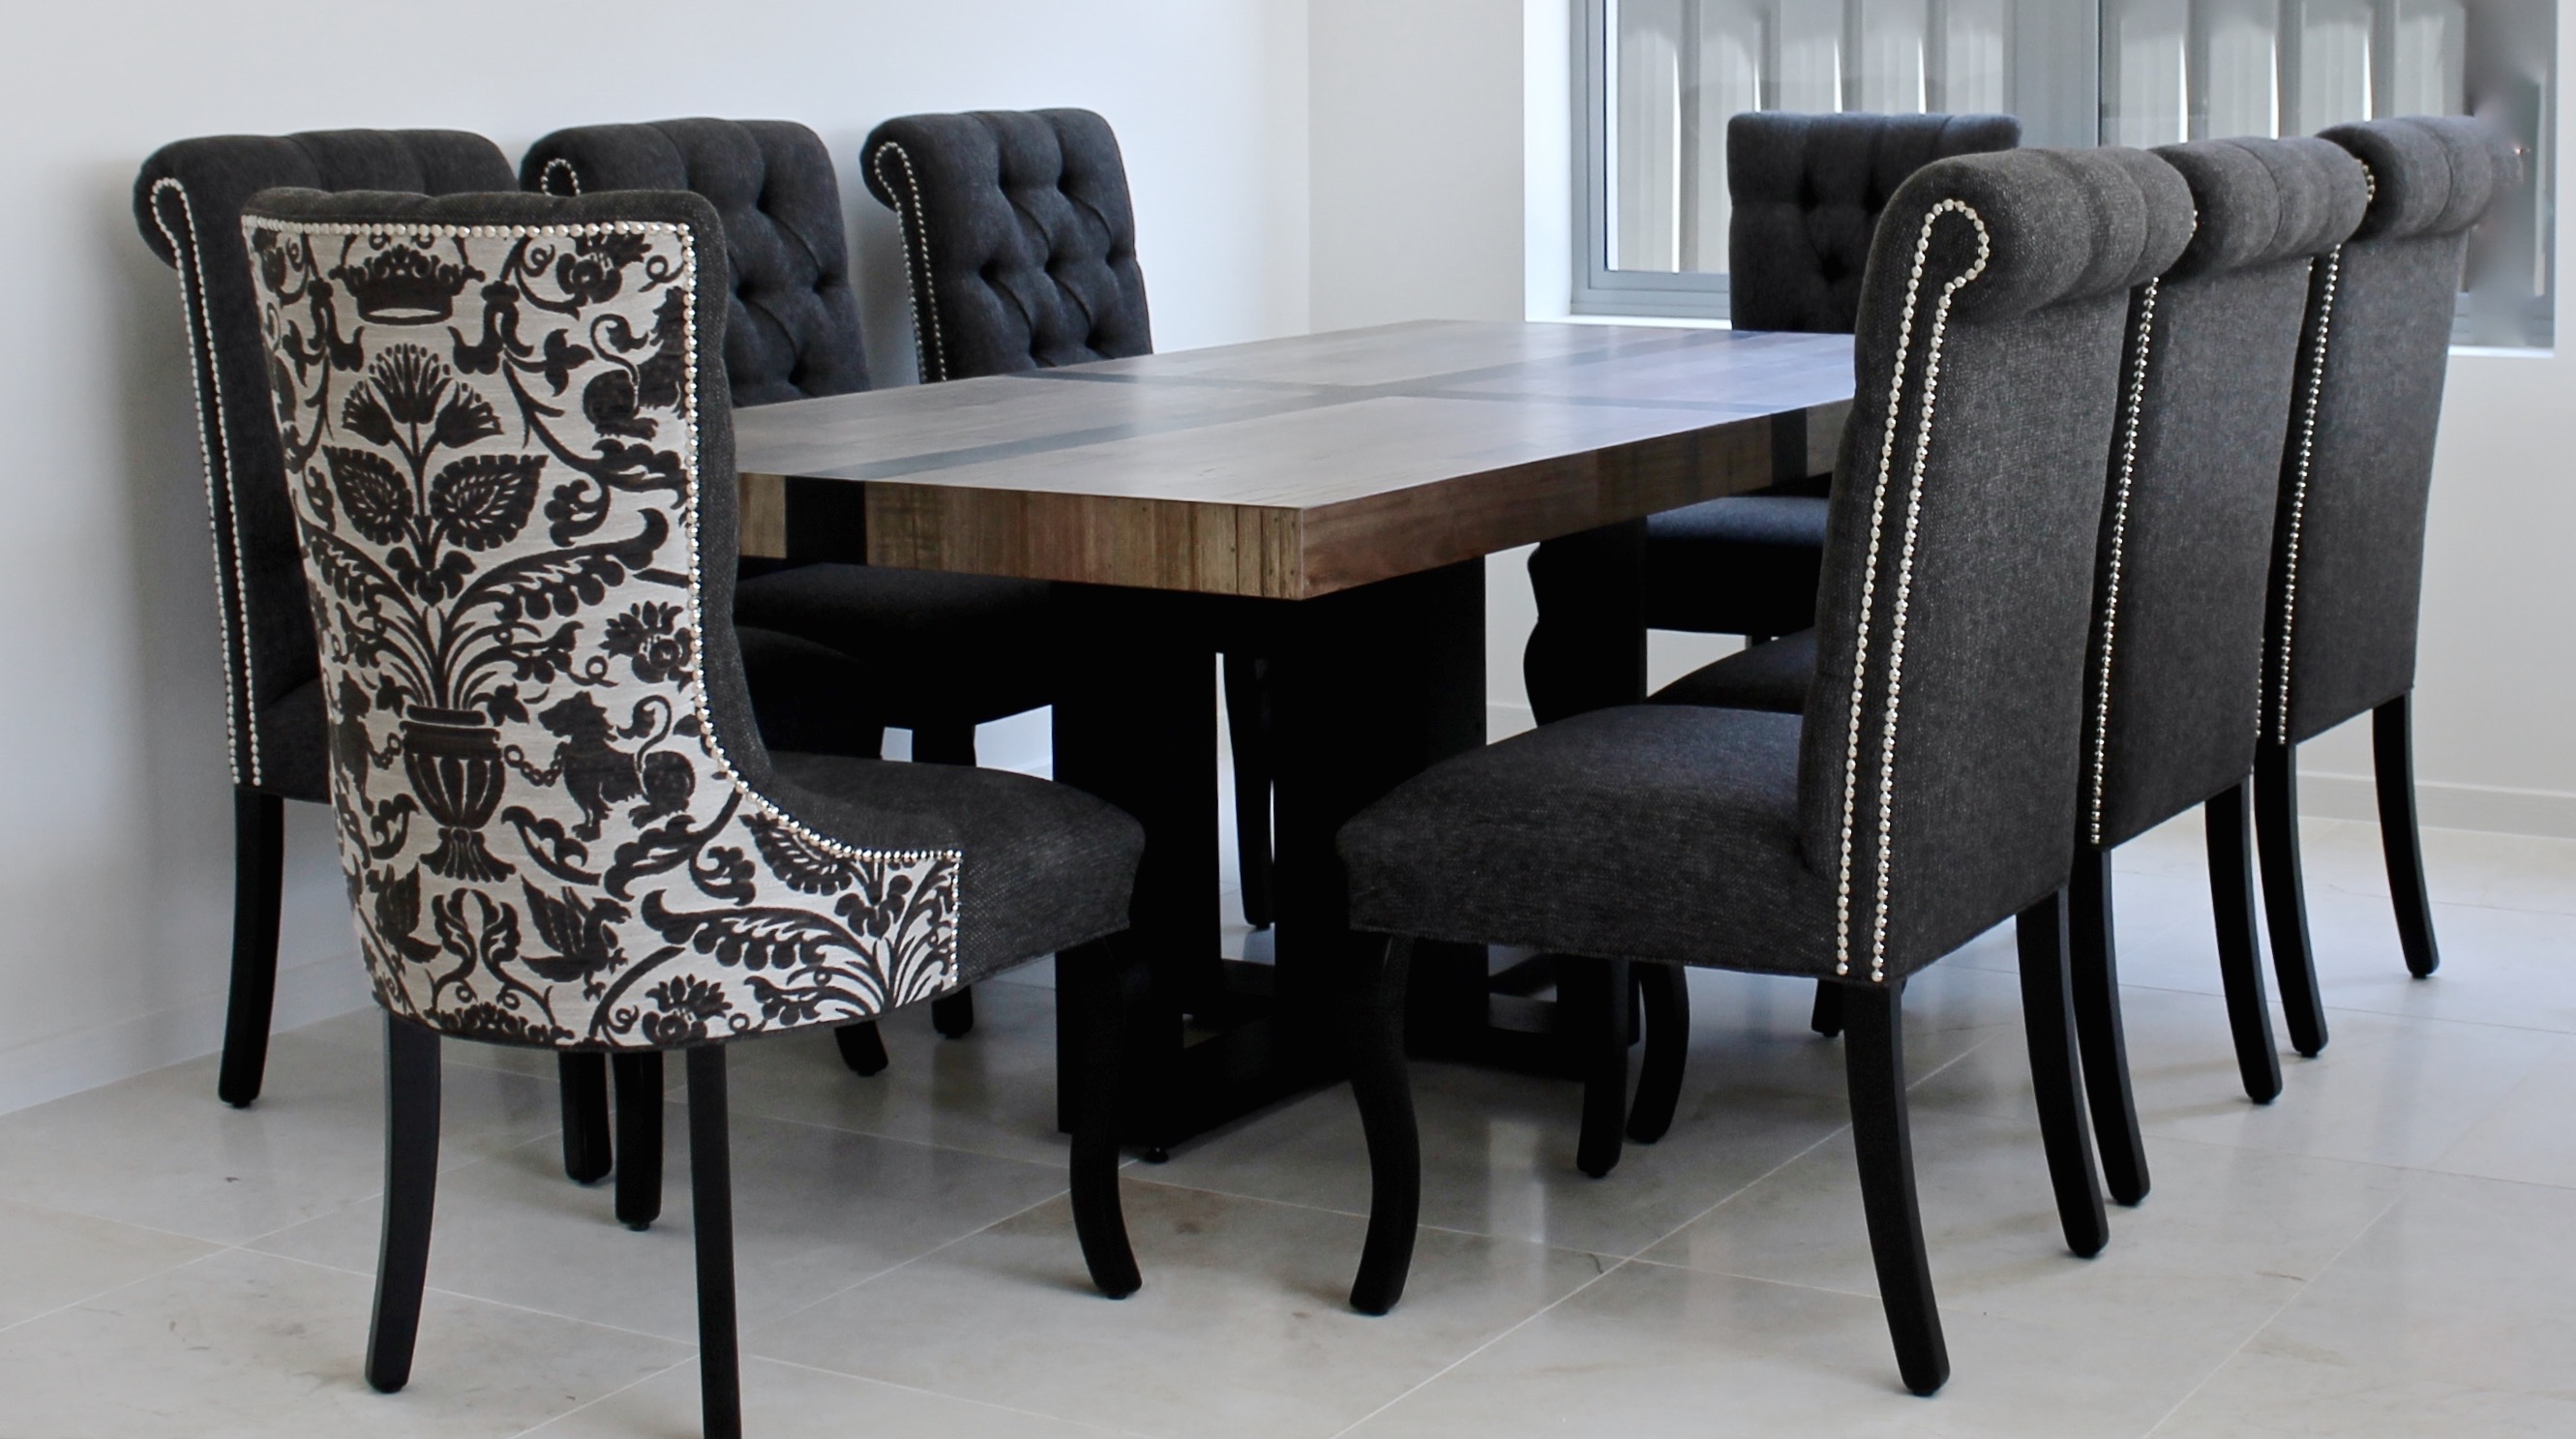 Folding Furniture Australia On